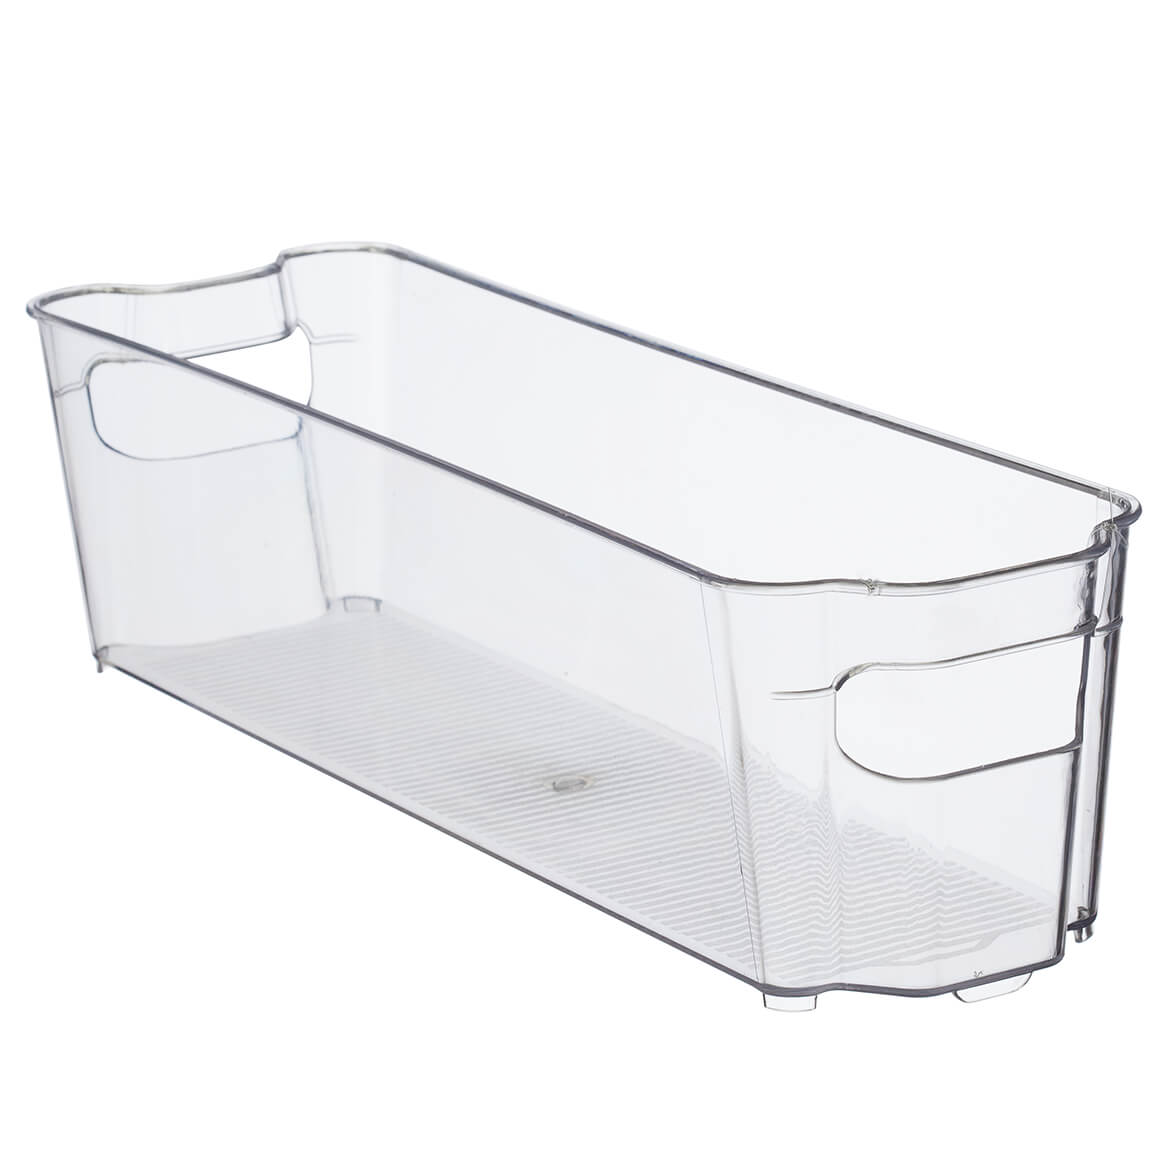 Refrigerator Plastic Bin by Home Style Kitchen Small-366189